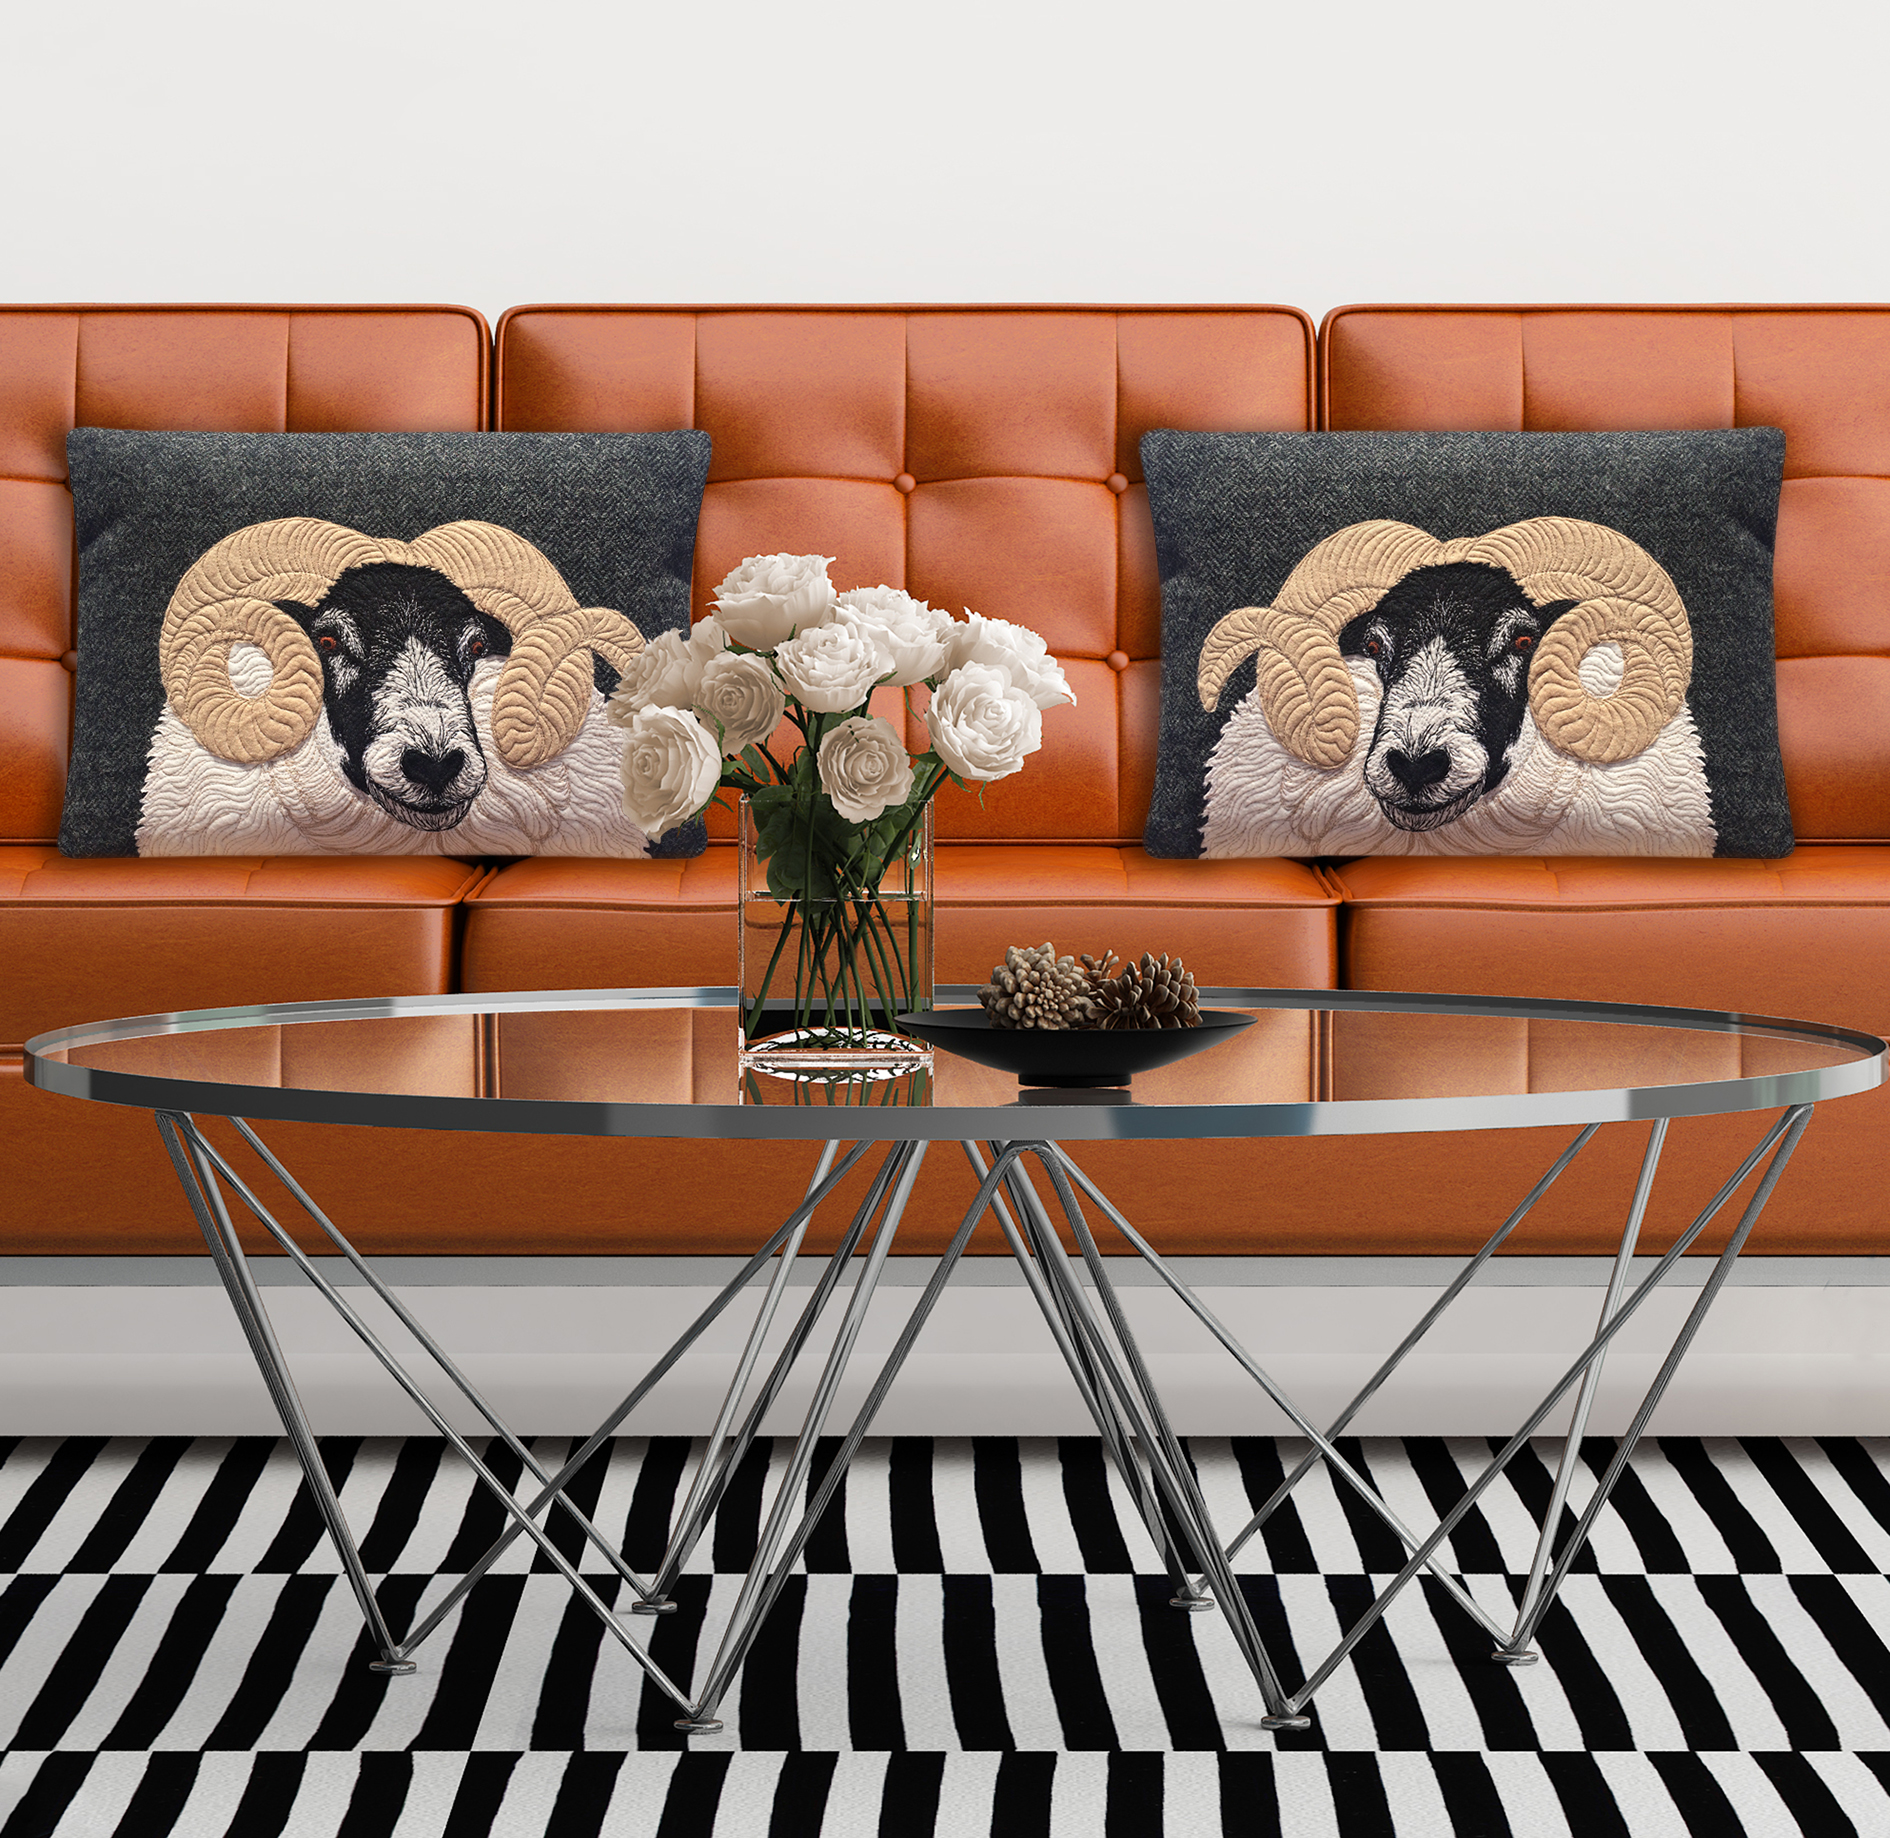 Black faced sheep cushions